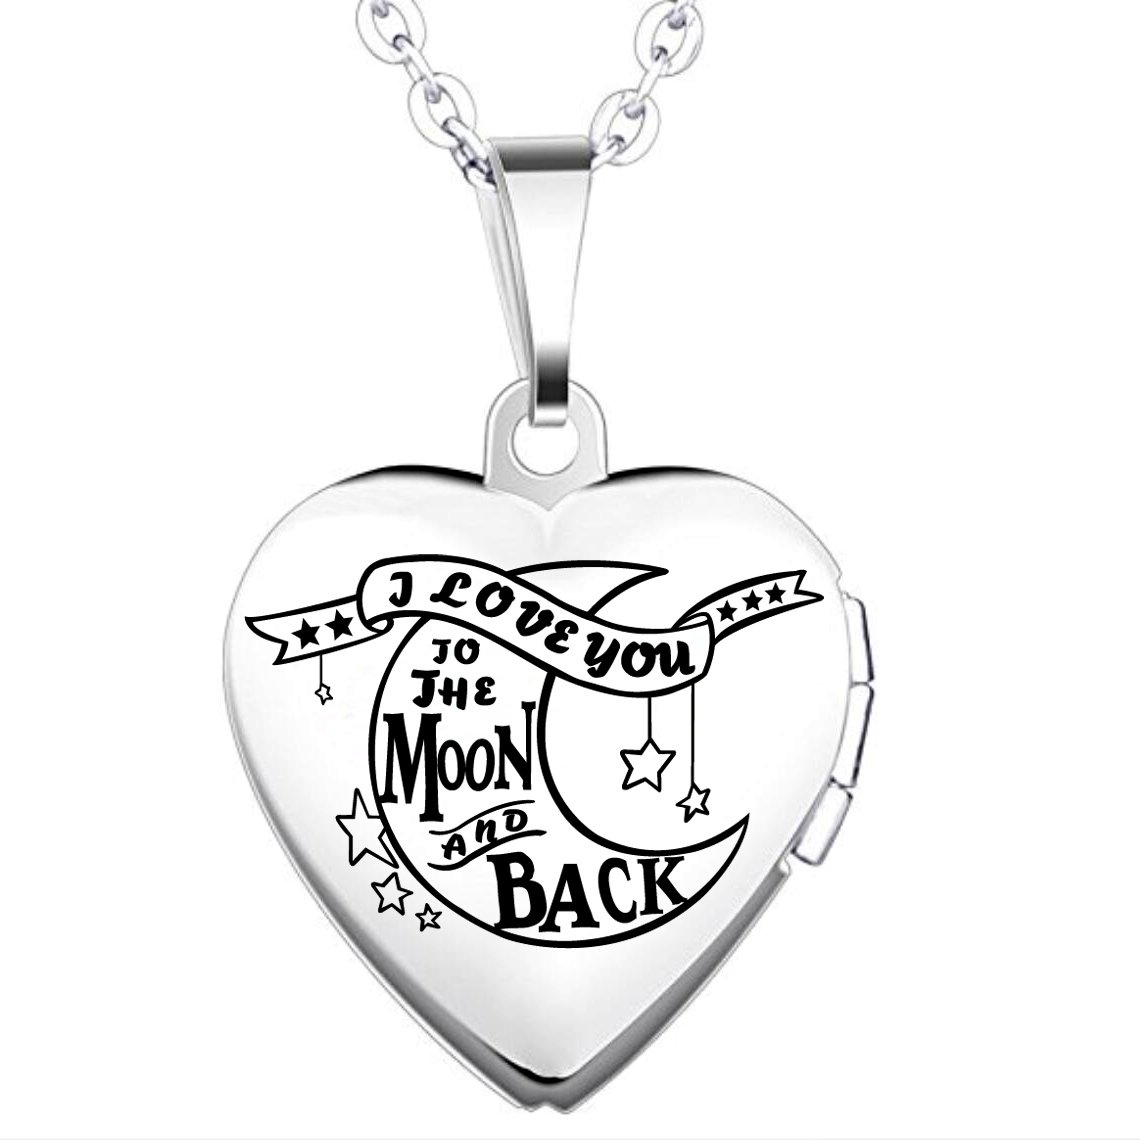 IXIQI Locket I Love You to the Moon and Back Titanium Heart Infinity Love Locket Necklace UK_B07BNH4G8Z